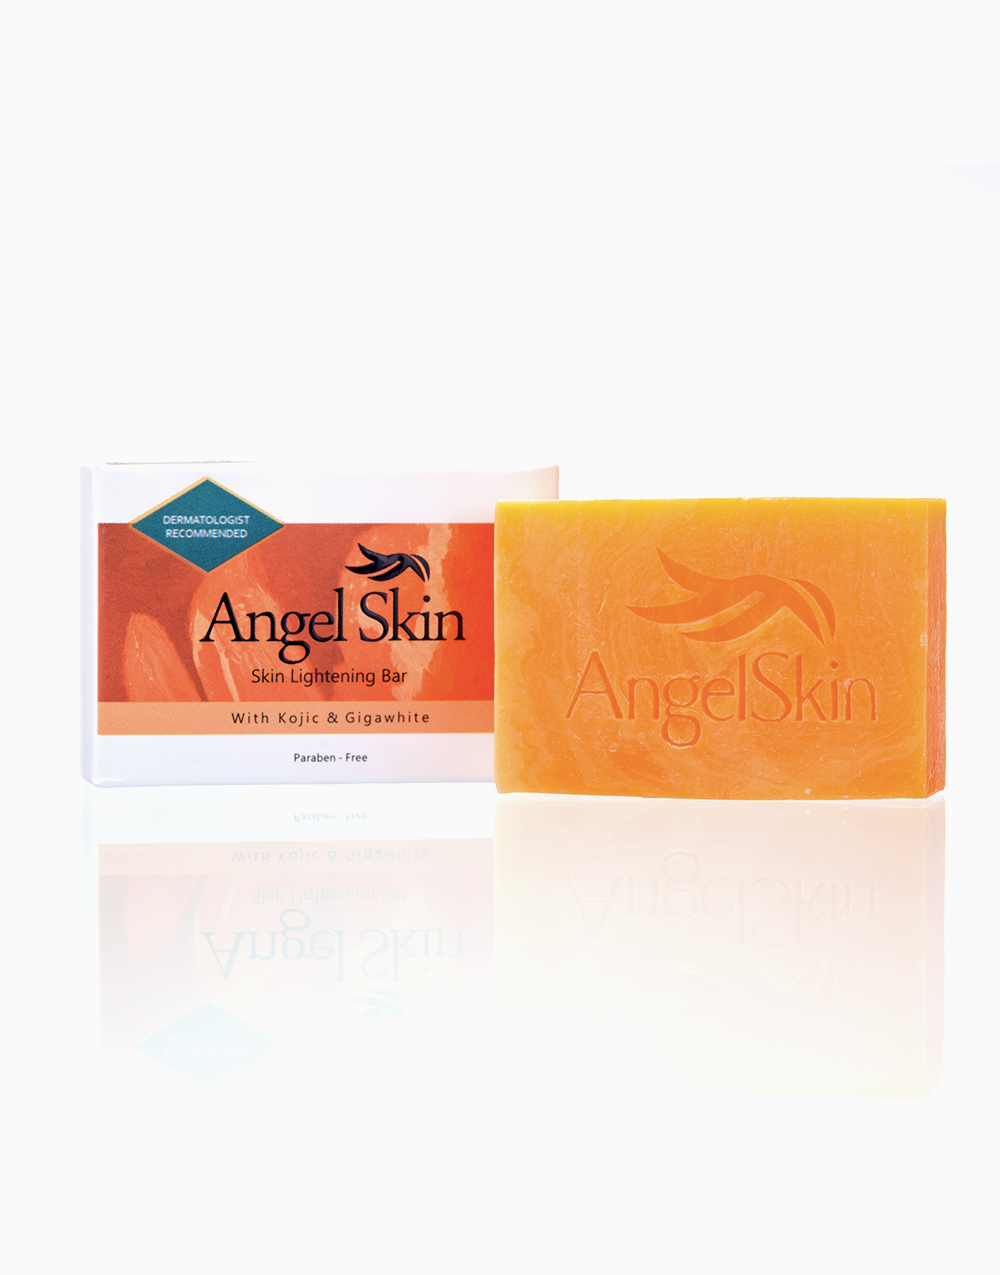 Skin Lightening Bar with Kojic & Gigawhite (Best Seller) by Angel Skin